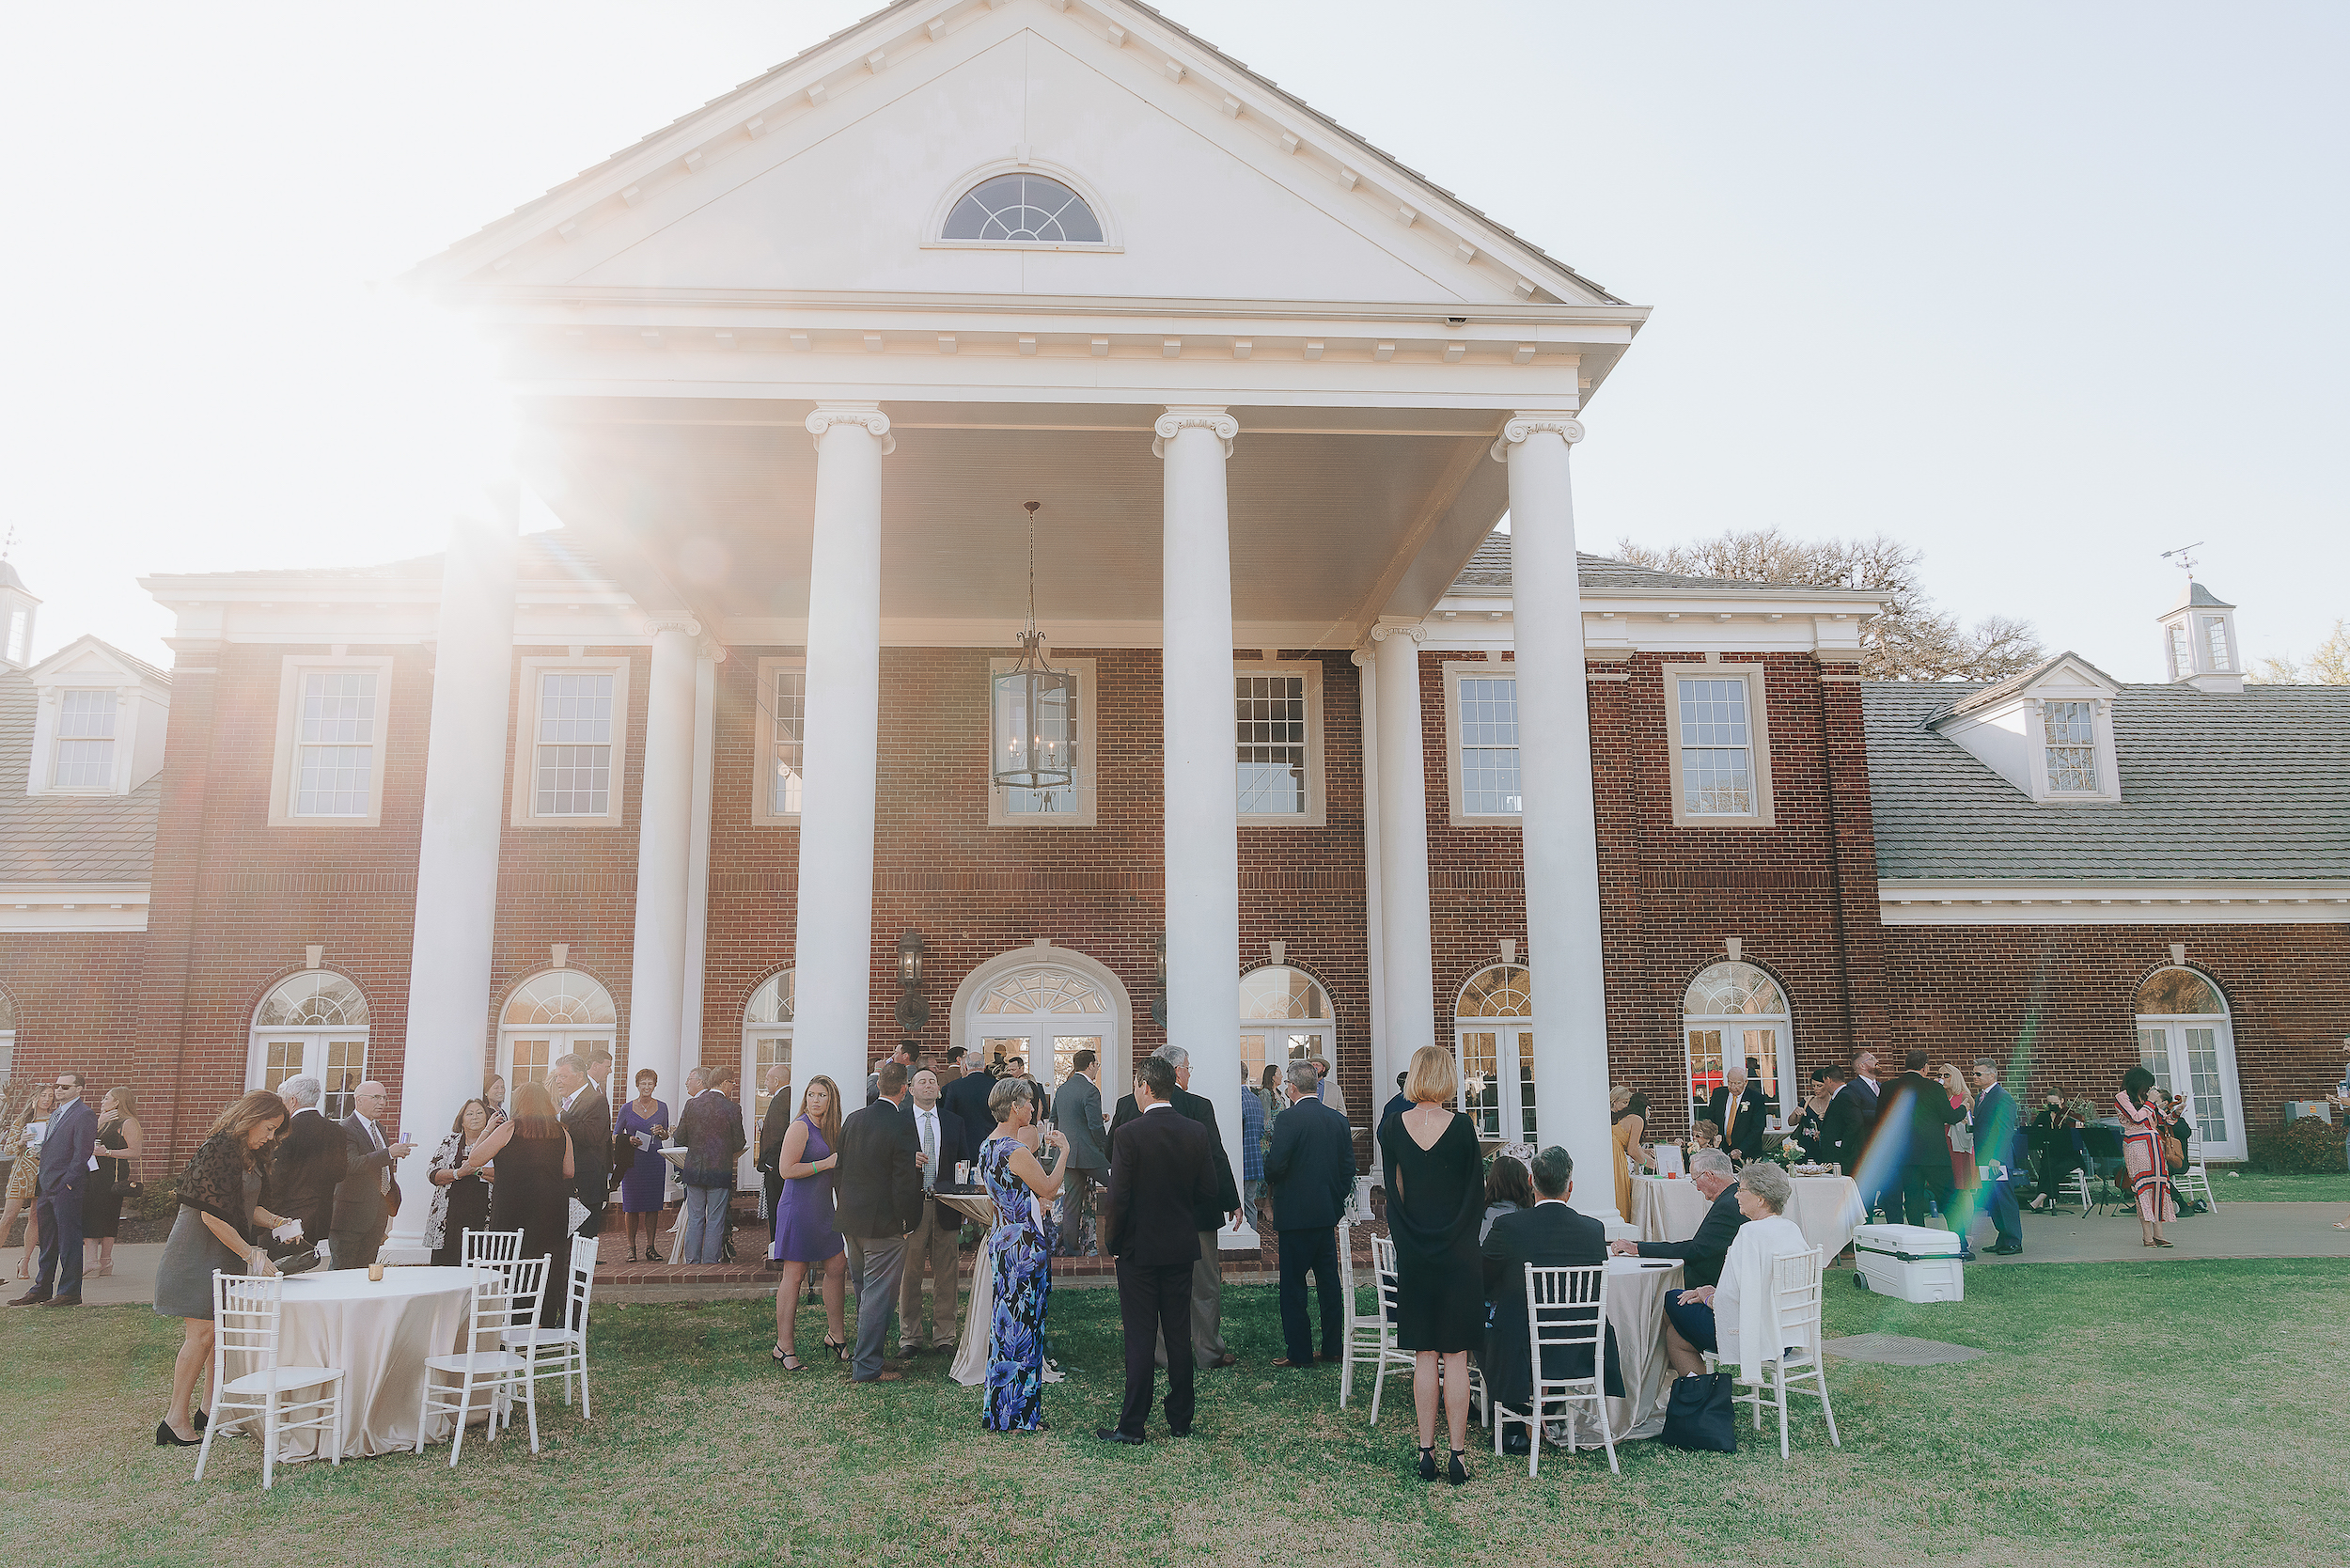 Exterior shot of the Mansion at ColoVista with guests waiting for the reception.